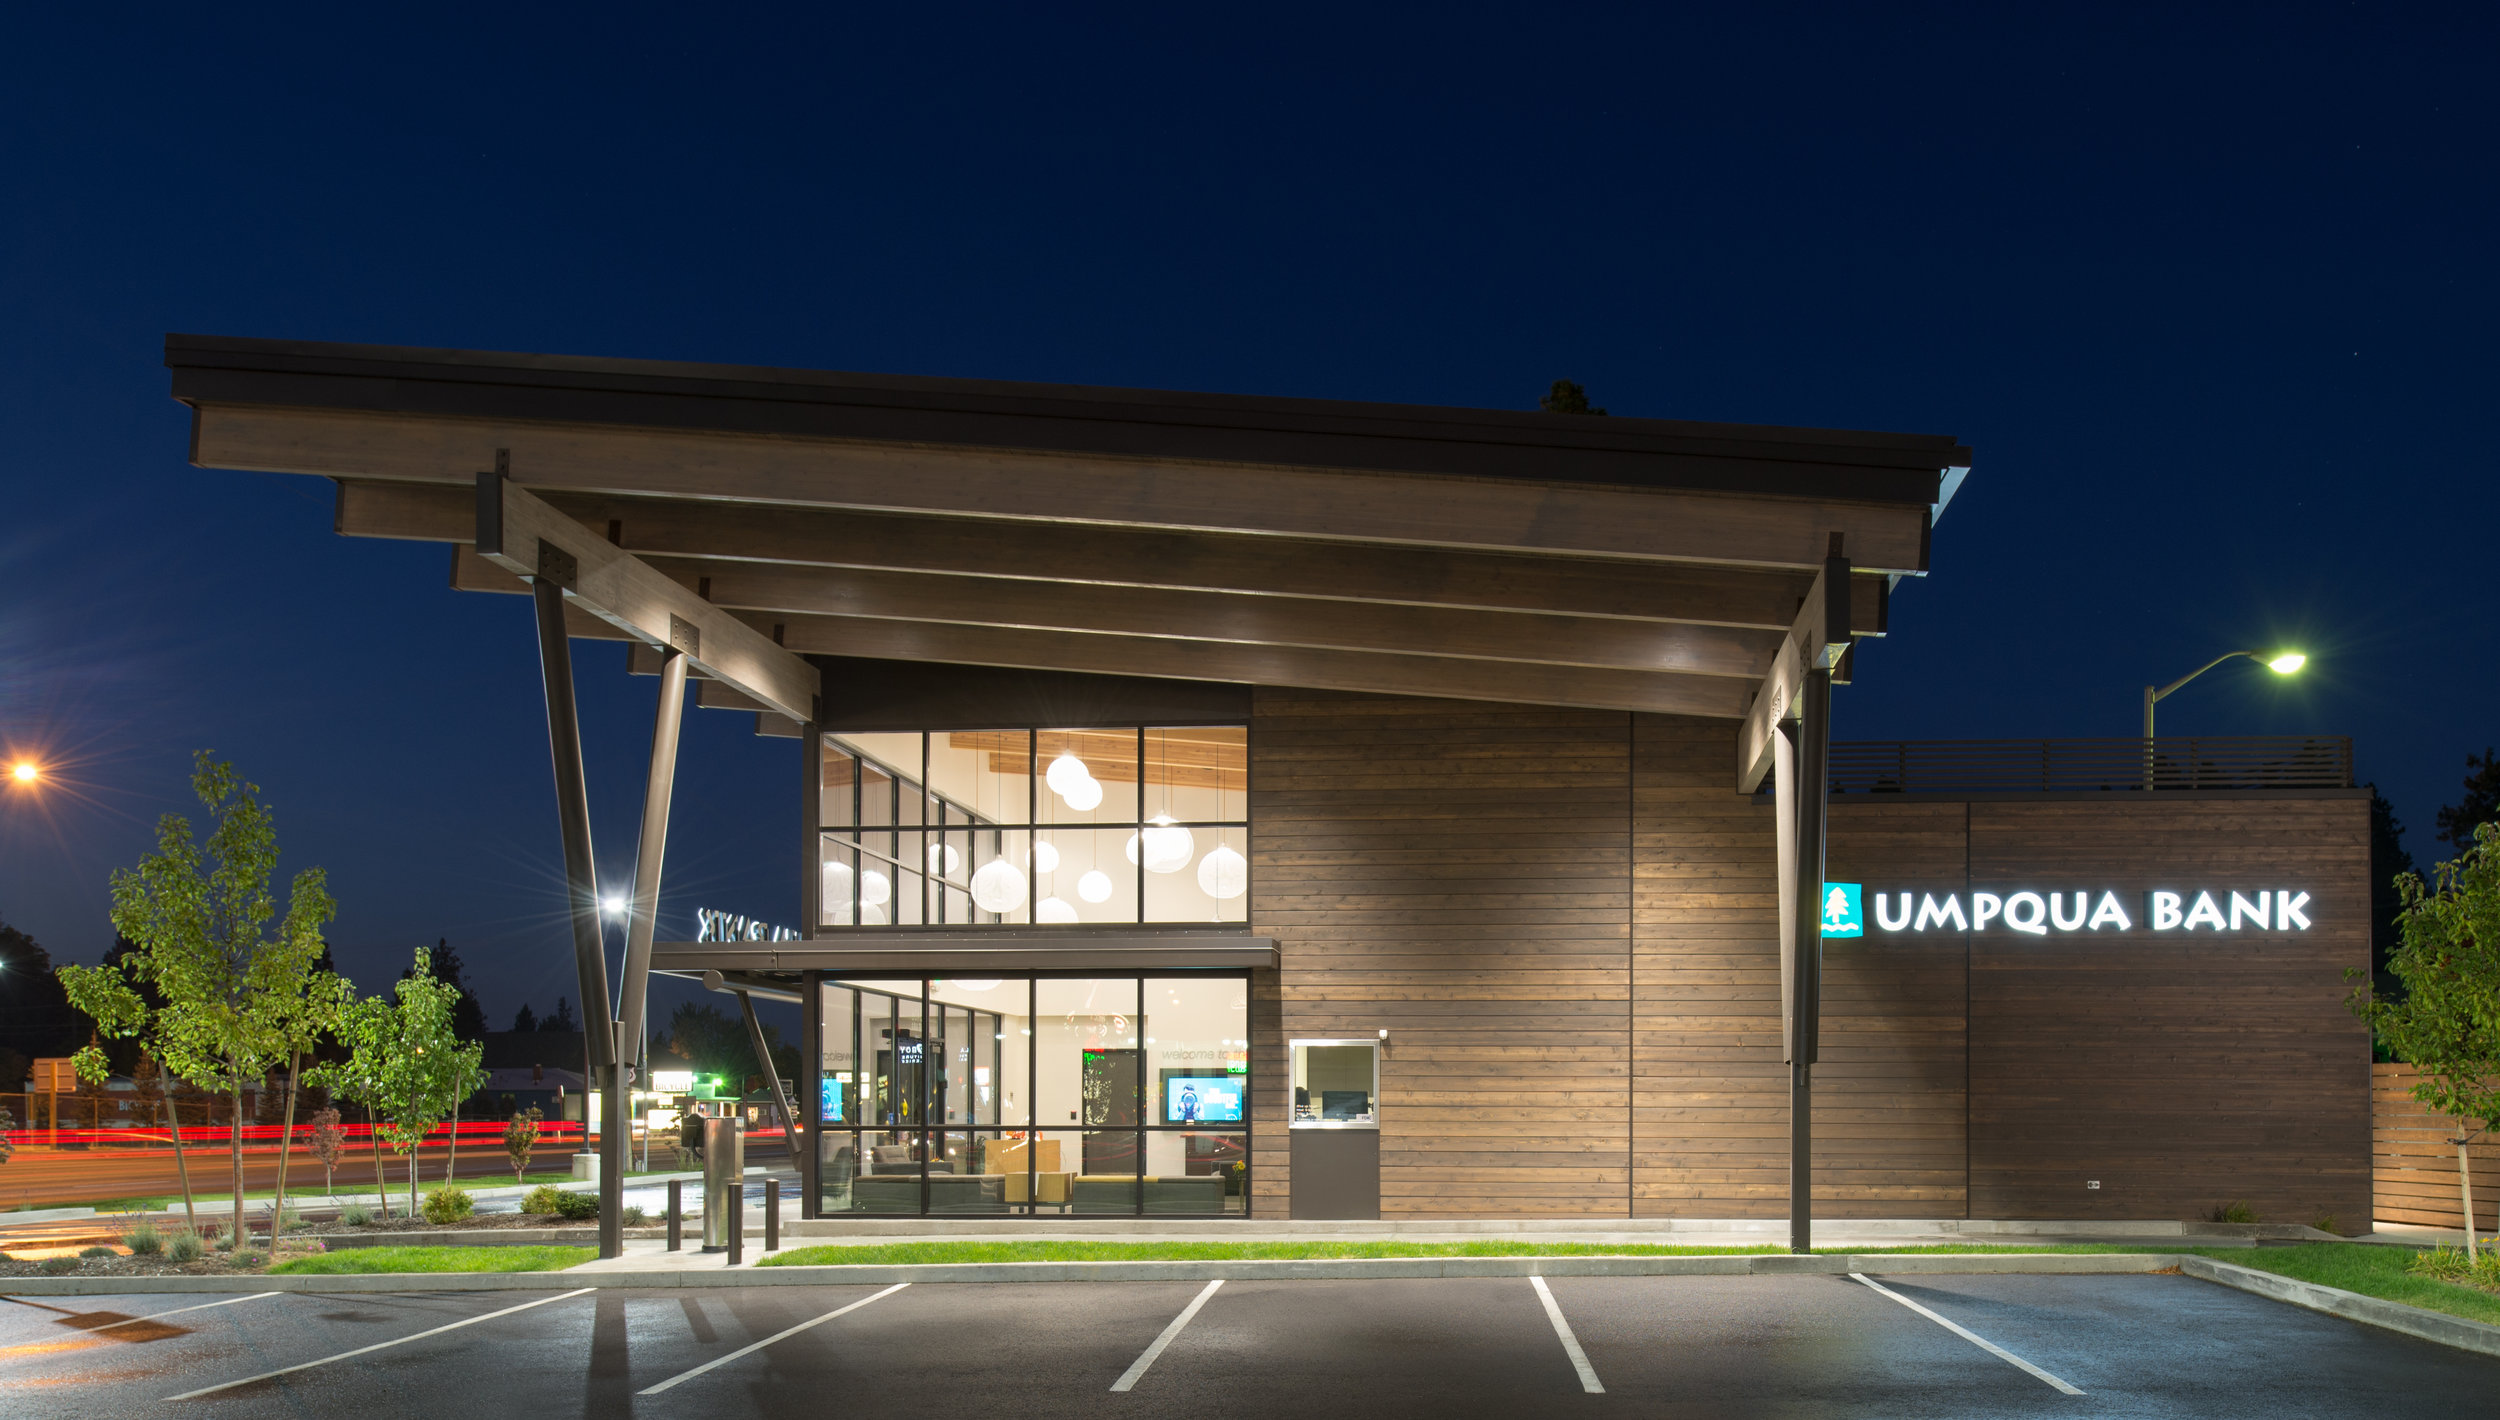 Umpqua Bank-3crop.jpg